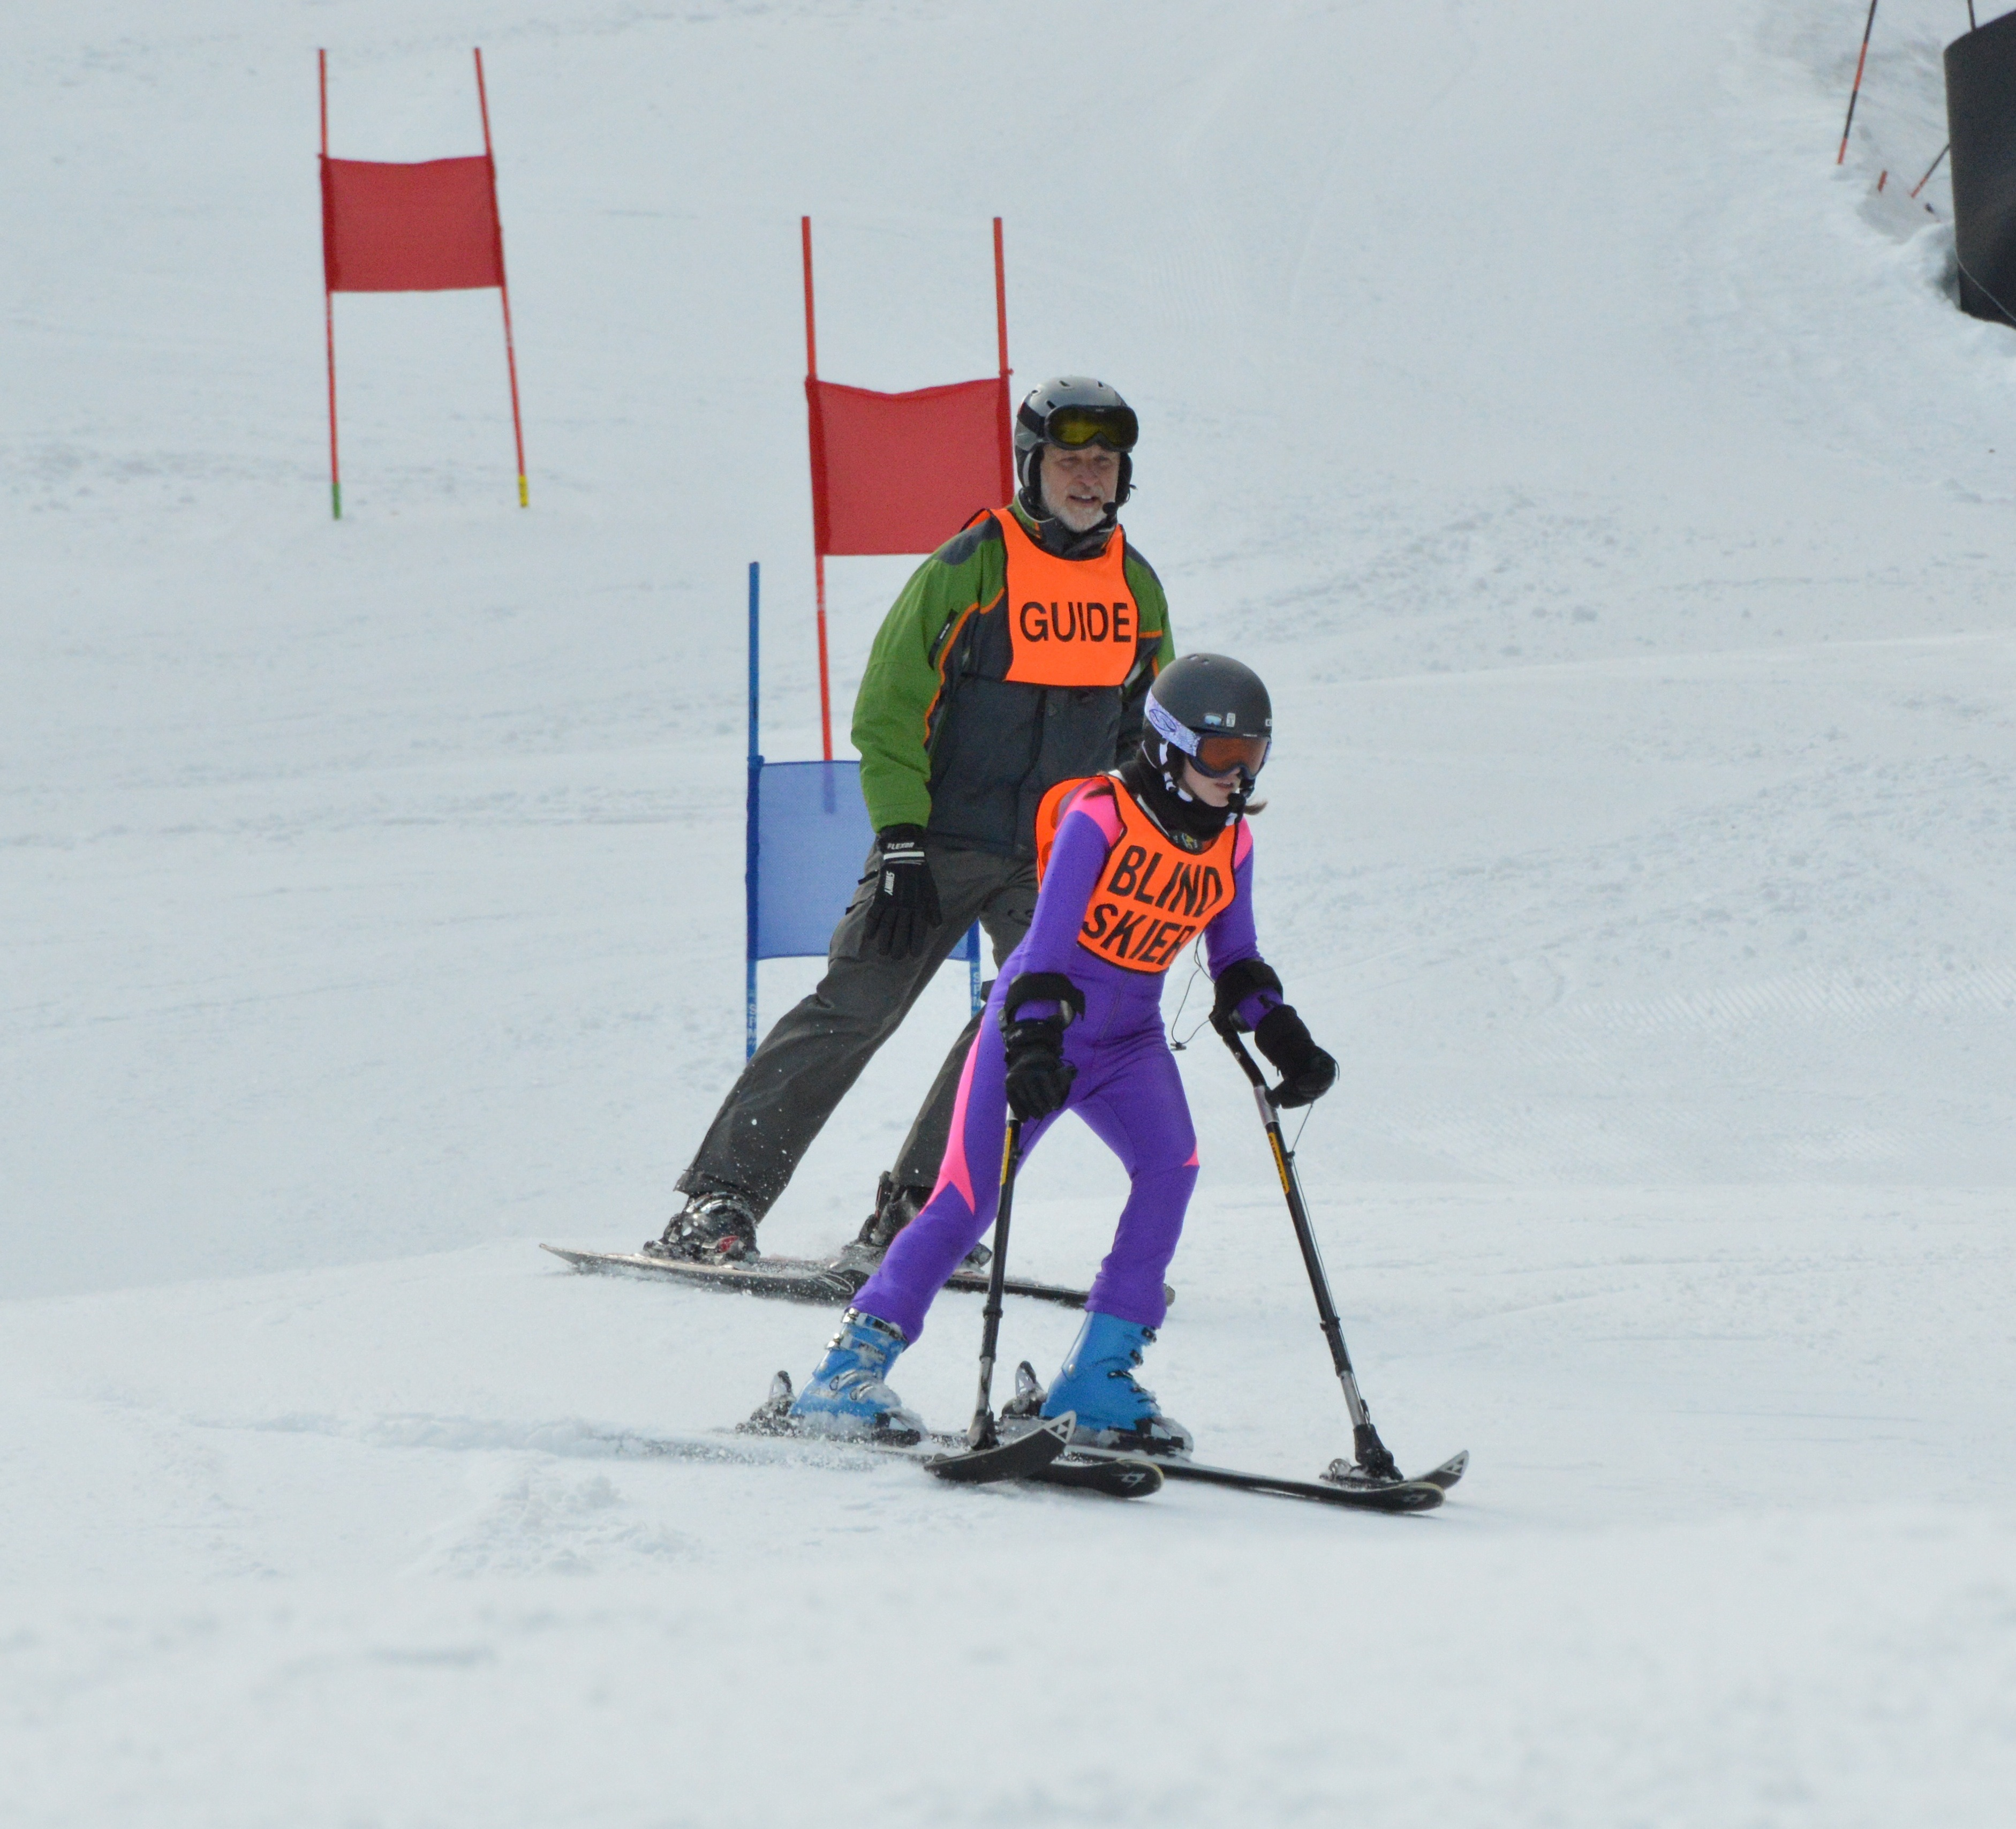 Blind ski racer and guide